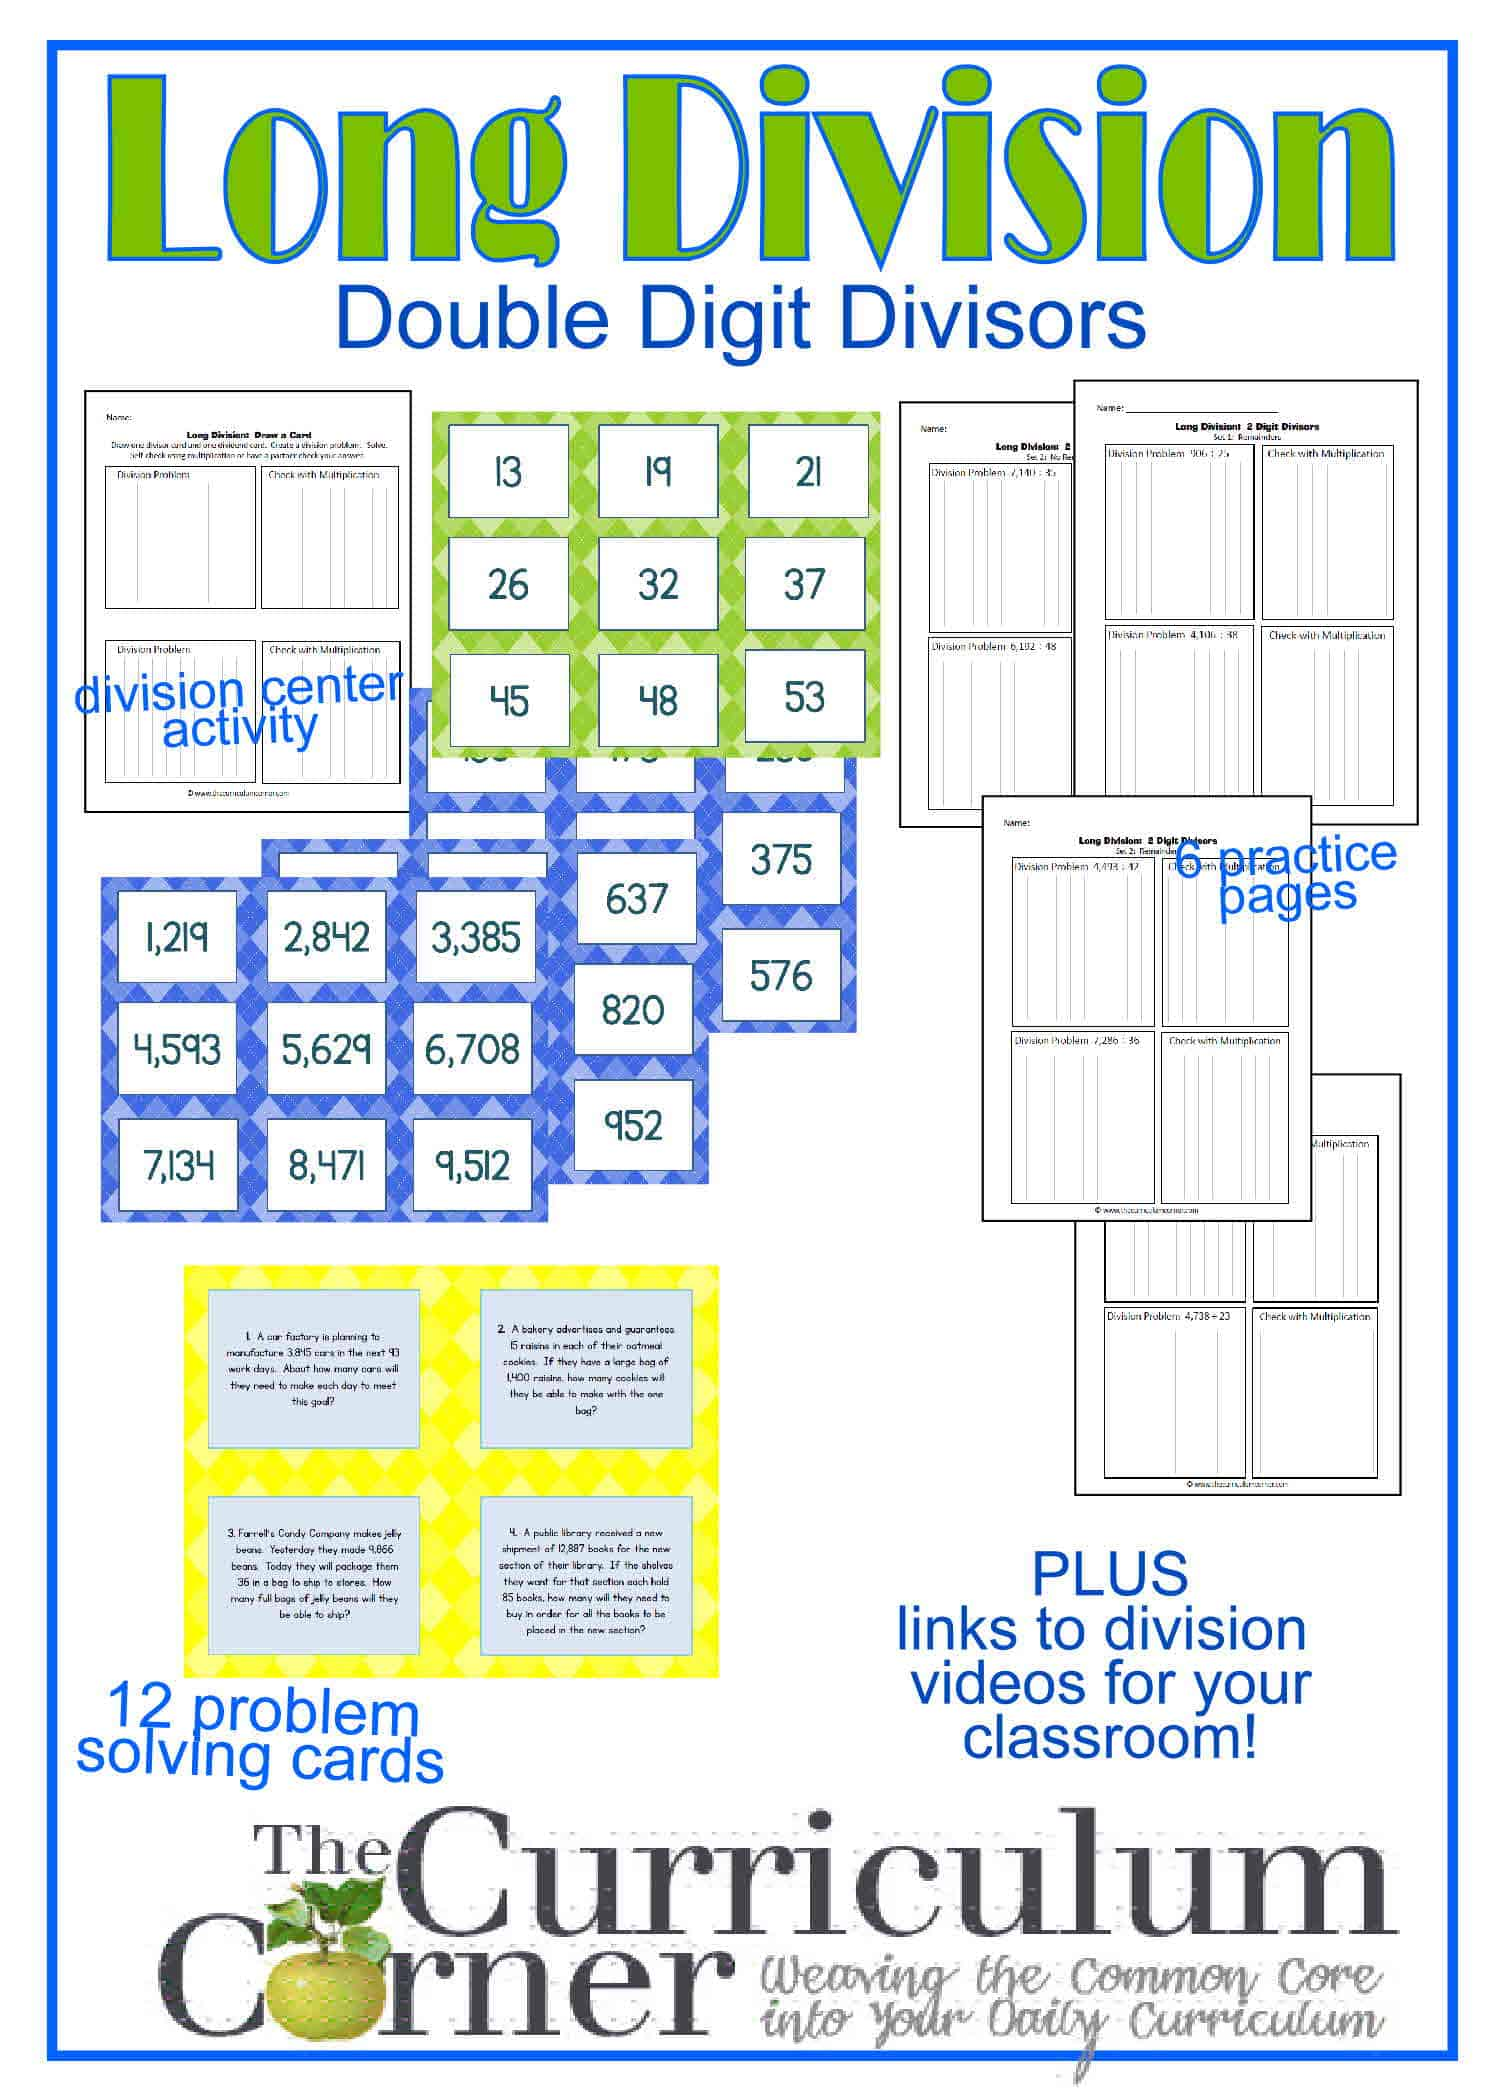 Worksheet Dividing Double Digit Numbers long division resources 2 digit divisor the curriculum corner ong dividing by a double center activity practice pages